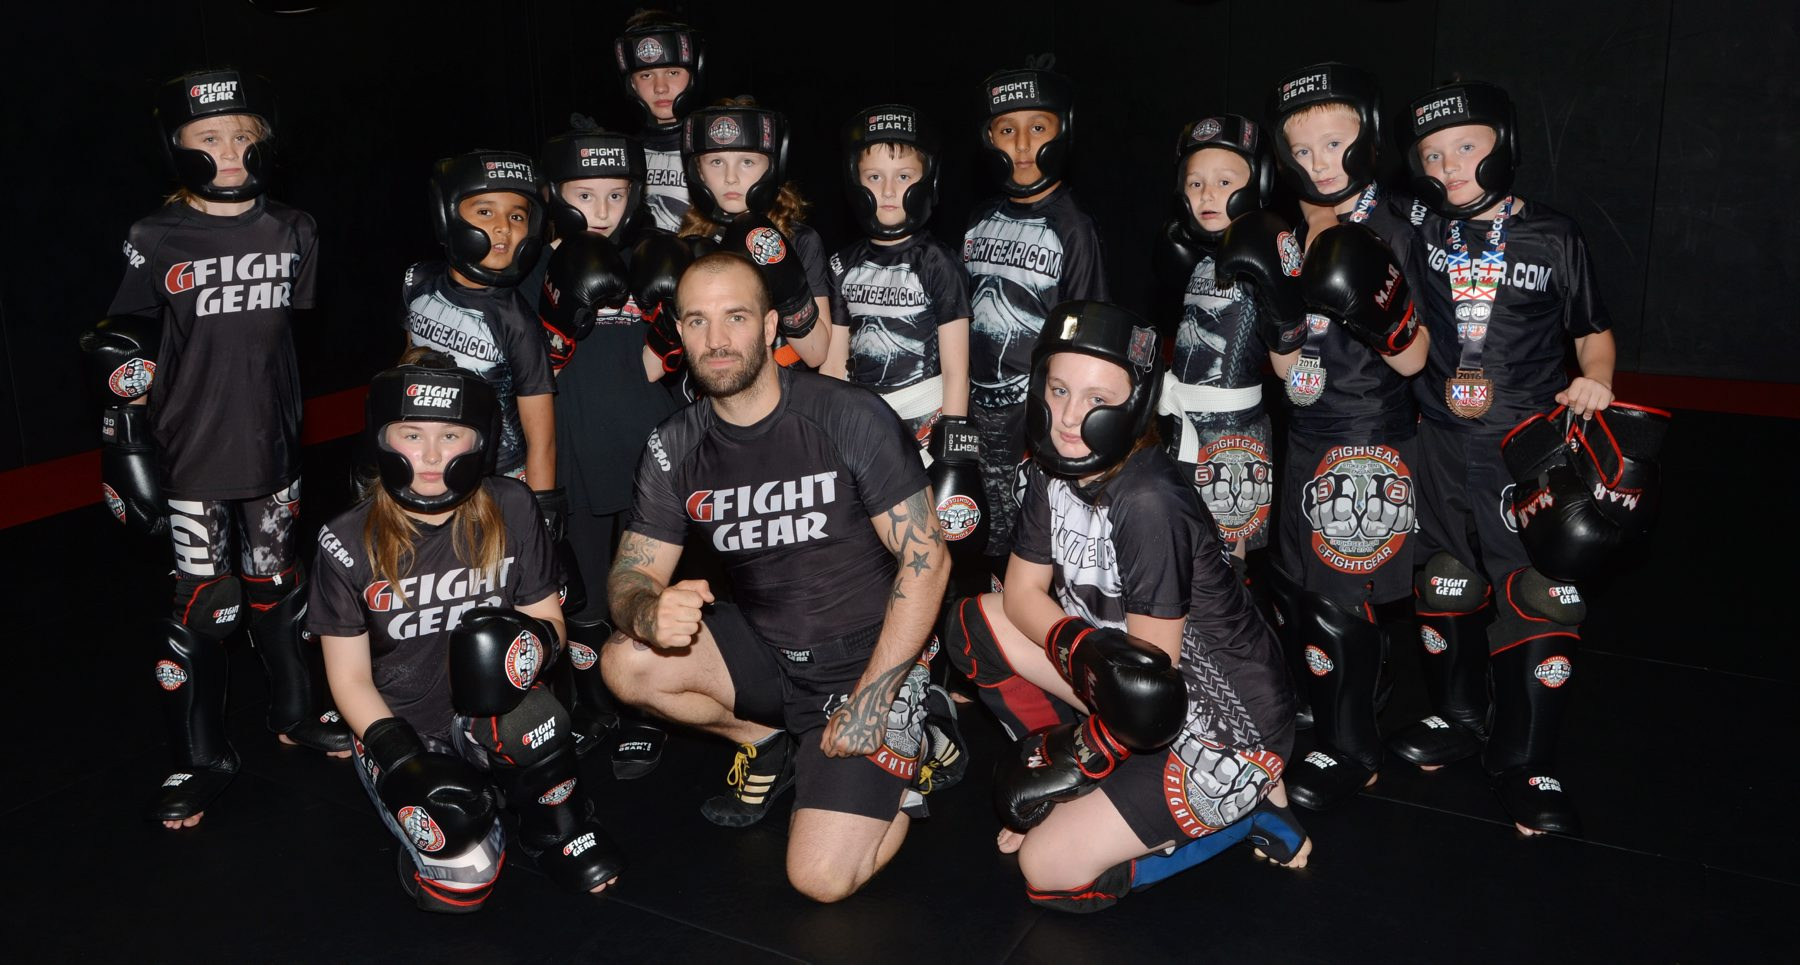 Pictured at the GLADIATOR MMA GYM, THE NEST UNIT 18, TRENT TRADING PARK, MELVILLE STREET, HANLEY, ST1 3LY as local MMA fighters win medals at a recent event in Fenton, having entered at just 10 days' notice.  Pictured left to right are 10-year-old Amy Clarke who won silver in the 40kg+ seven-10-years section, Charlie Robinson, aged nine, who took bronze in the same event as brother Bailey Robinson, aged 10, who took silver in the -40kg weight division having met each other in the semi-finals and  Reece Grocott, aged 13, who took gold in the +55kg category of the 11-14 year-olds section.   Team pic with all the fighters with Ross Pointon centre.